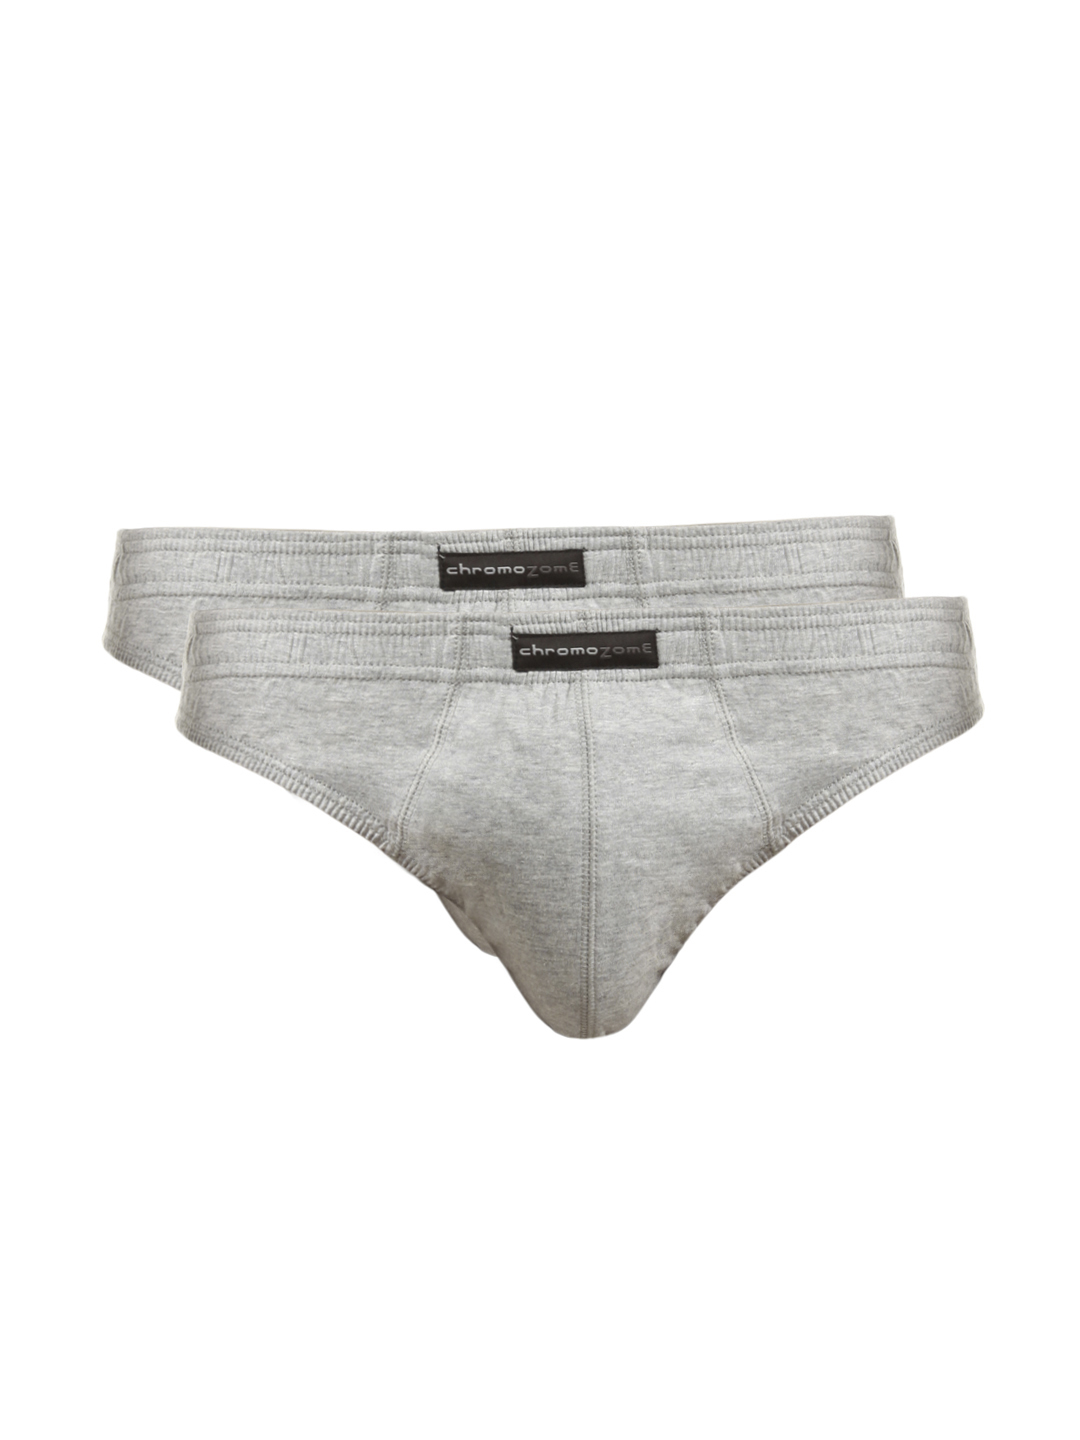 Chromozome Men Grey Melange Pack of 2 Briefs